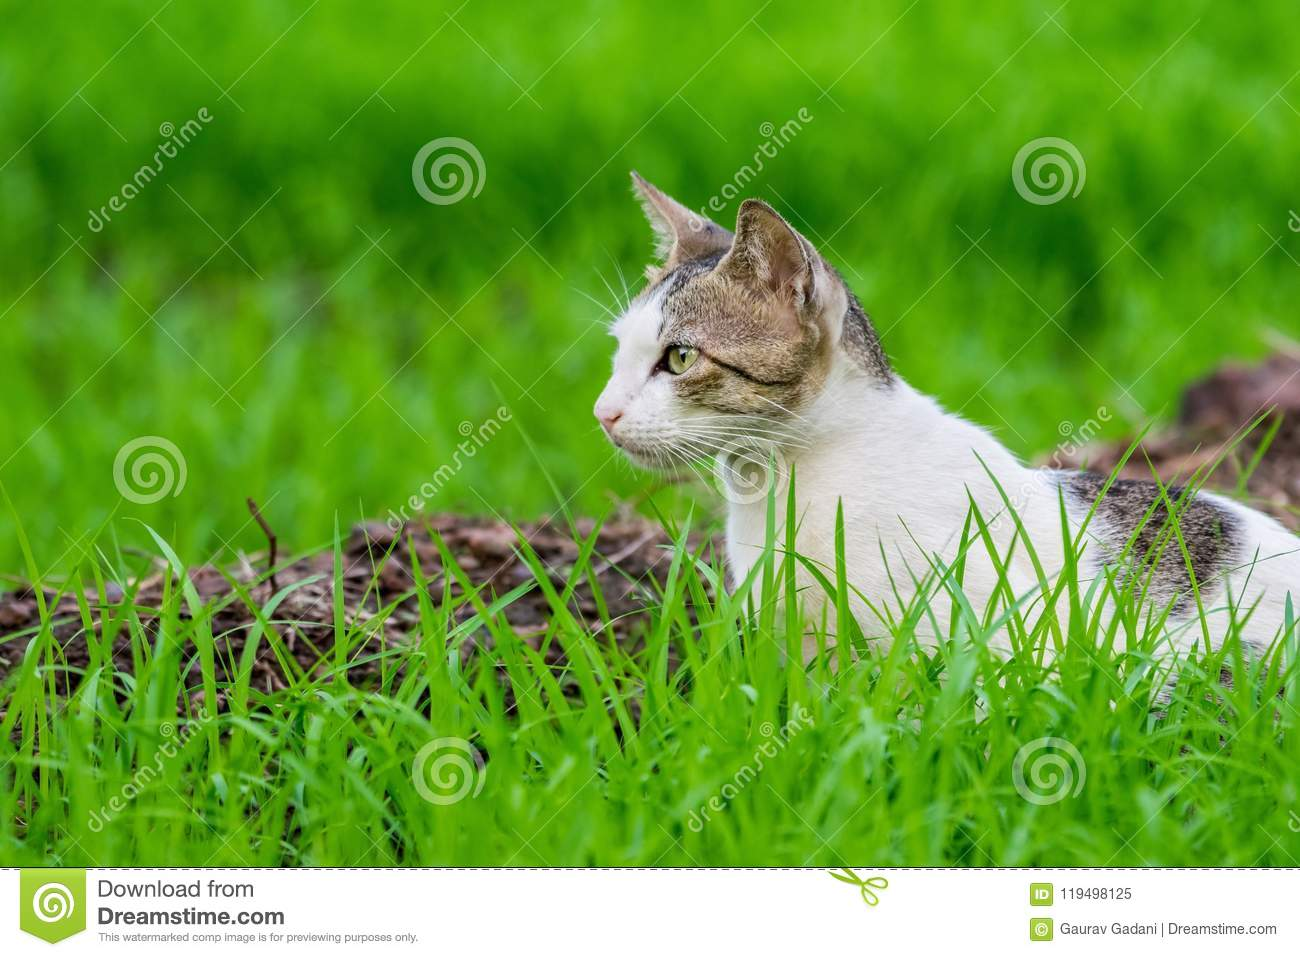 Wild cat waiting in grass covered field